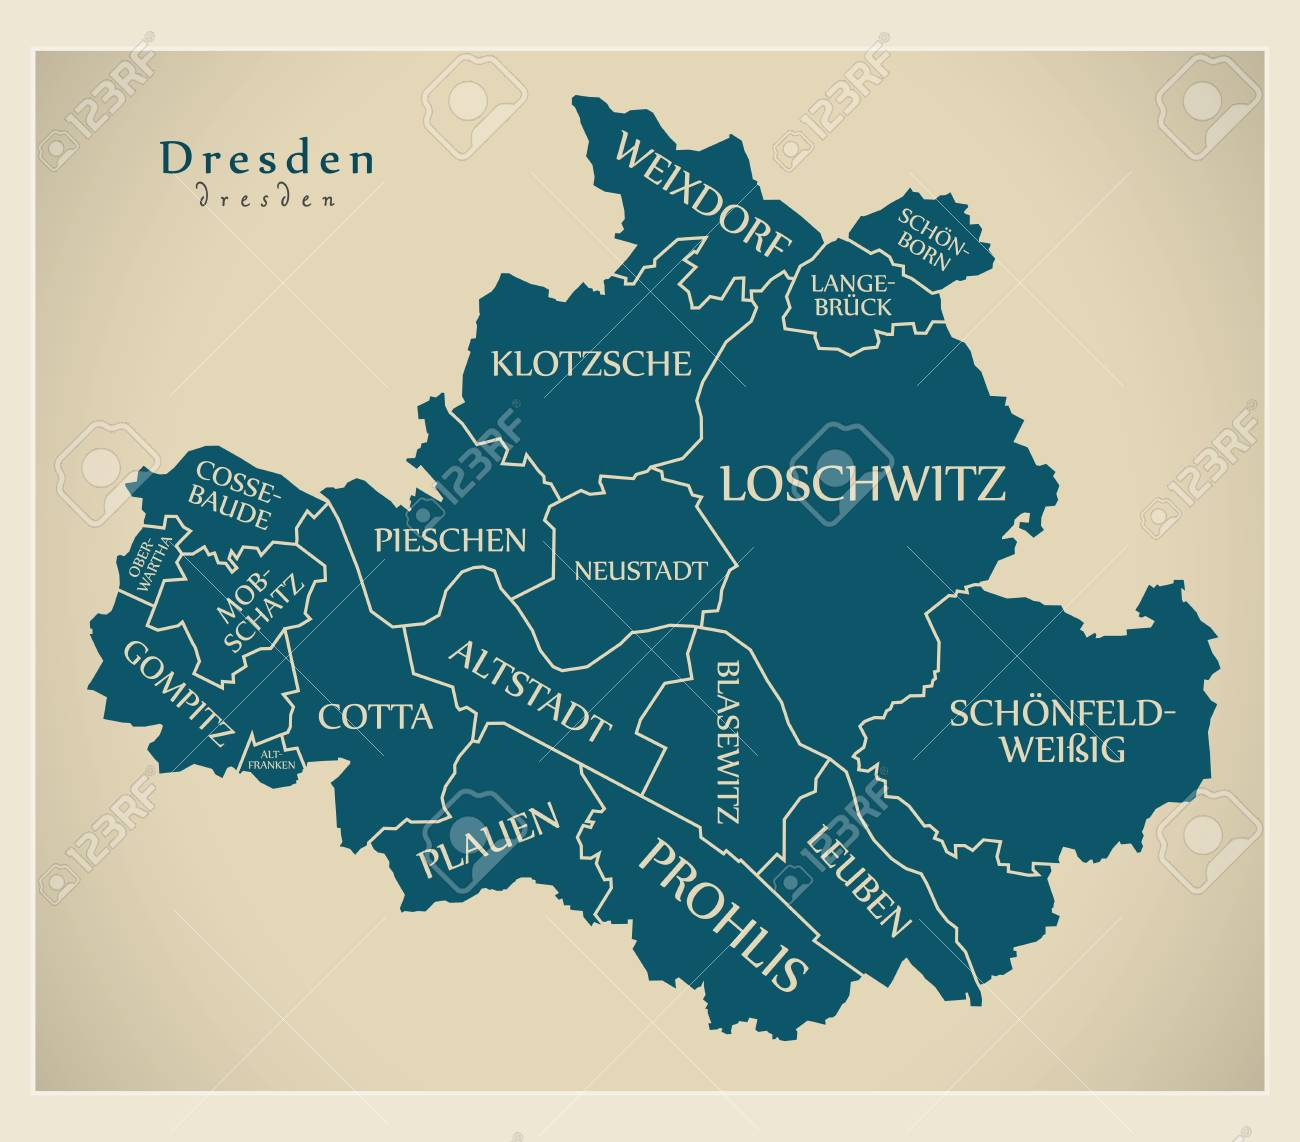 Dresden On Map Of Germany.Modern City Map Dresden City Of Germany With Boroughs And Titles